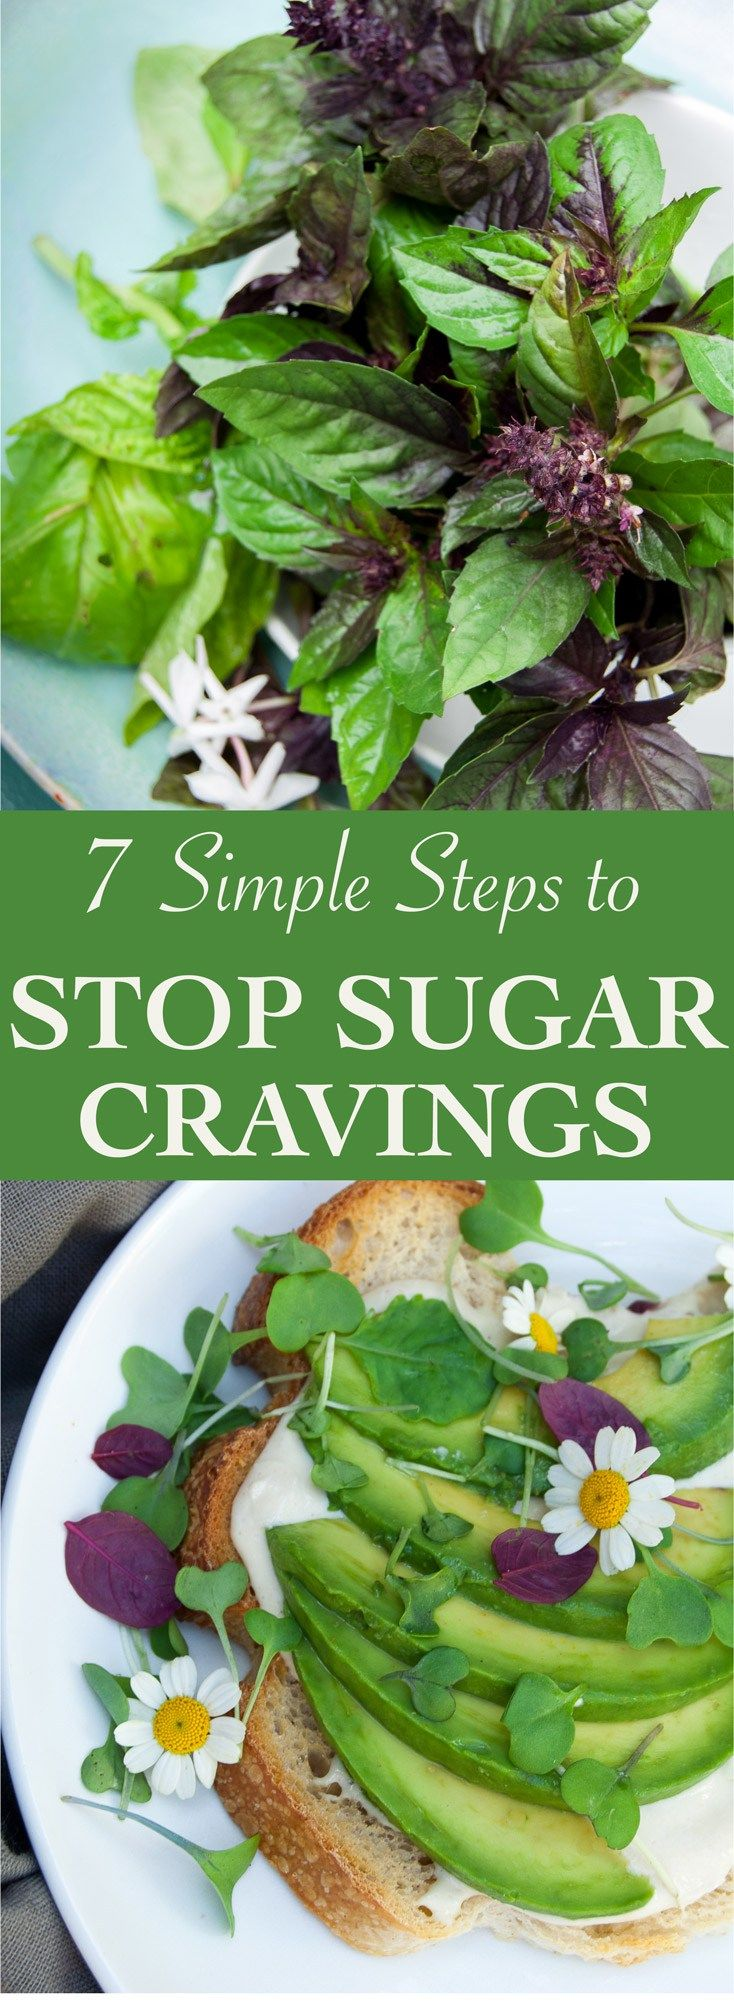 Stop Sugar Cravings | Weight loss | Food cravings